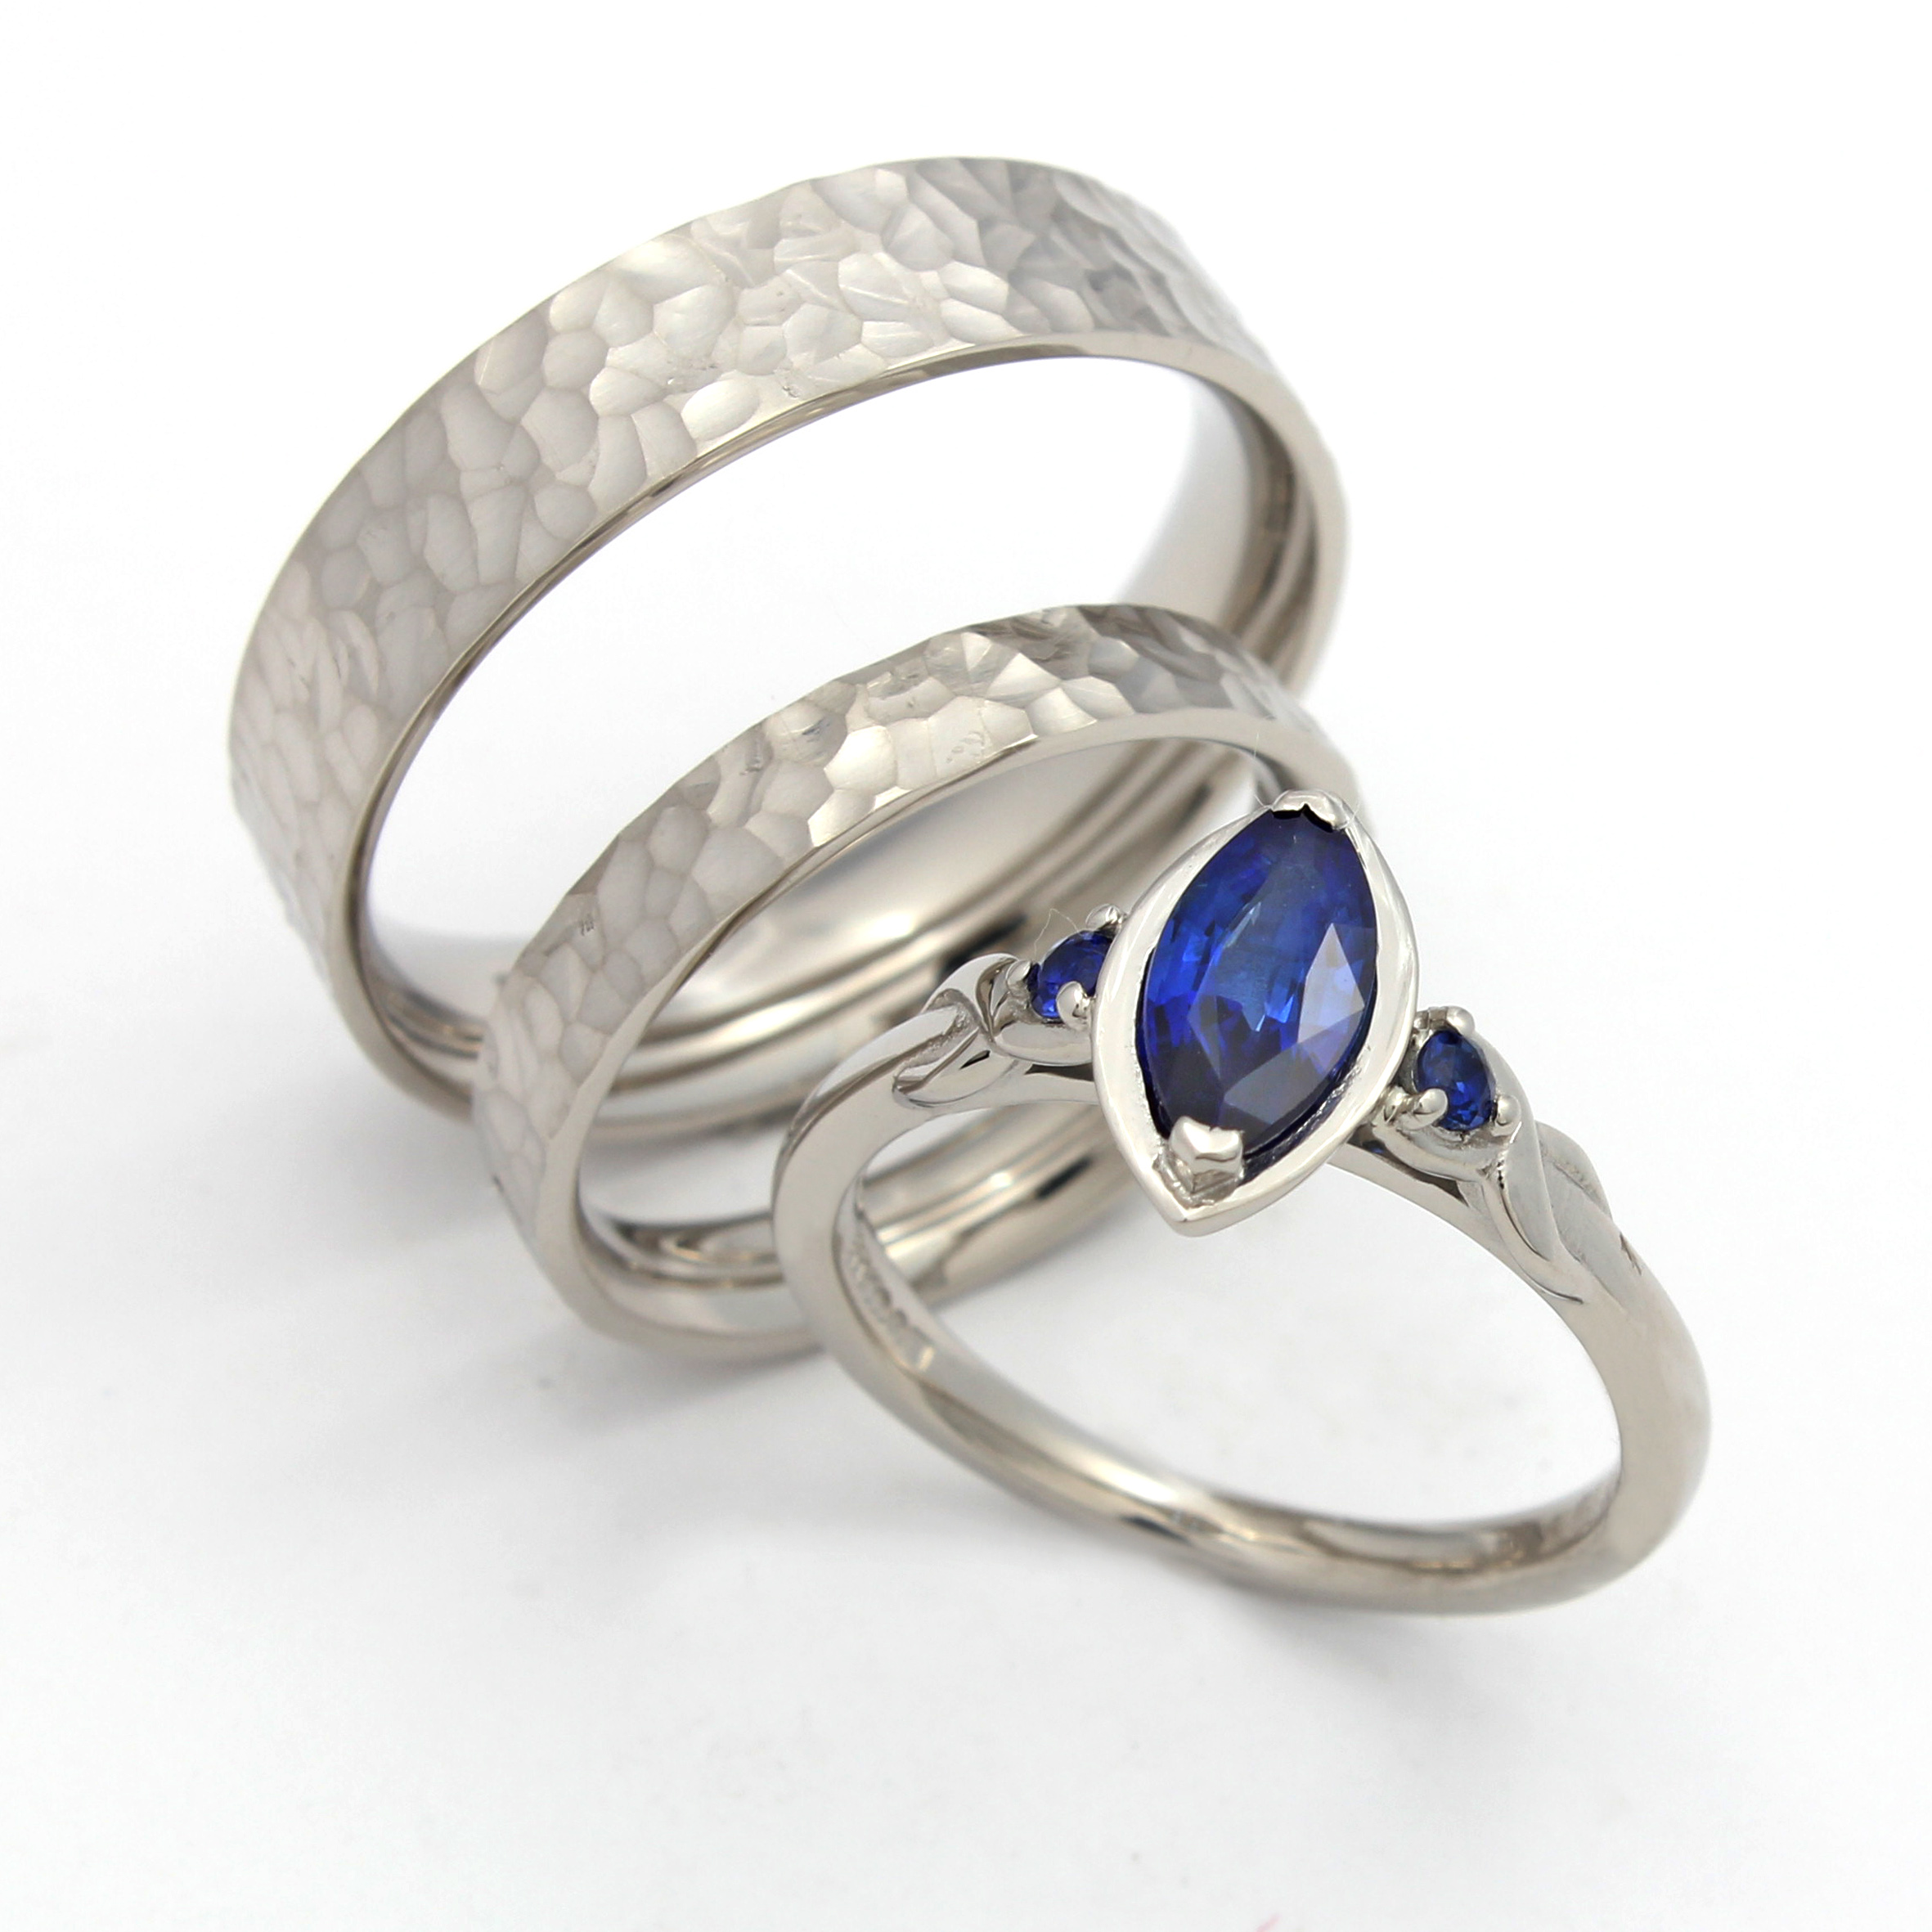 Sapphire engagement ring and matchine hammered wedding rings